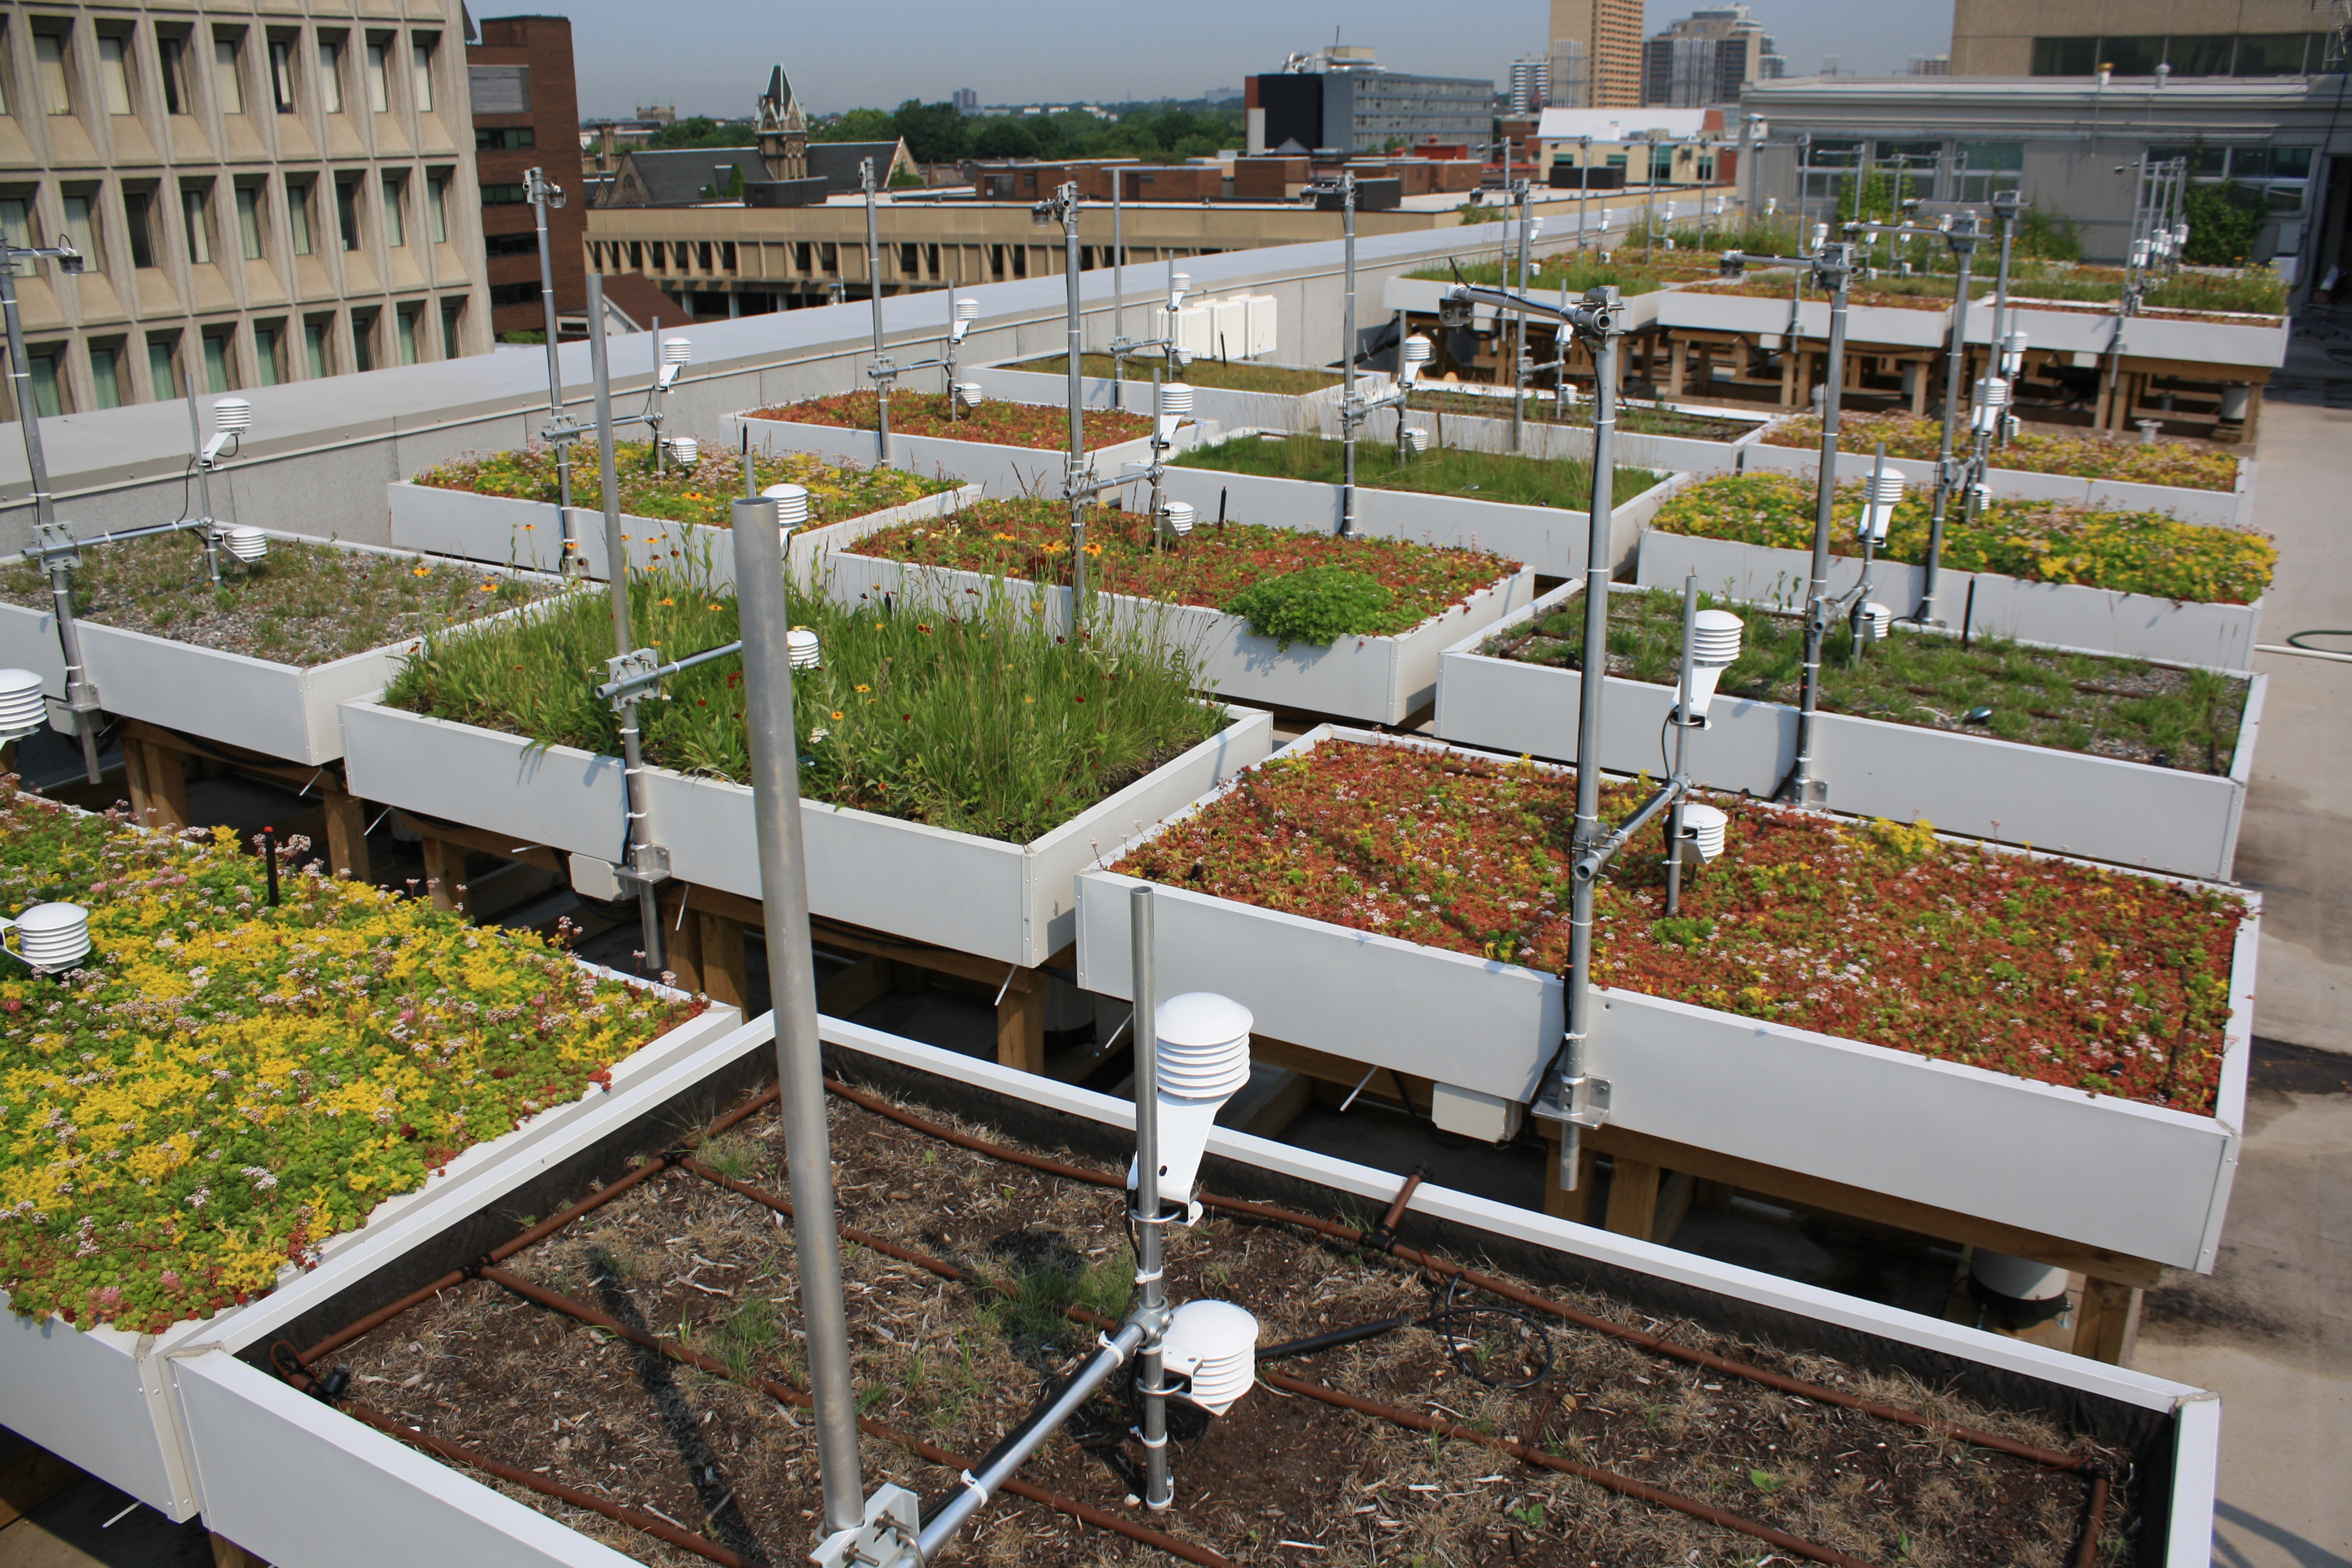 Asla 2013 Professional Awards Green Roof Innovation